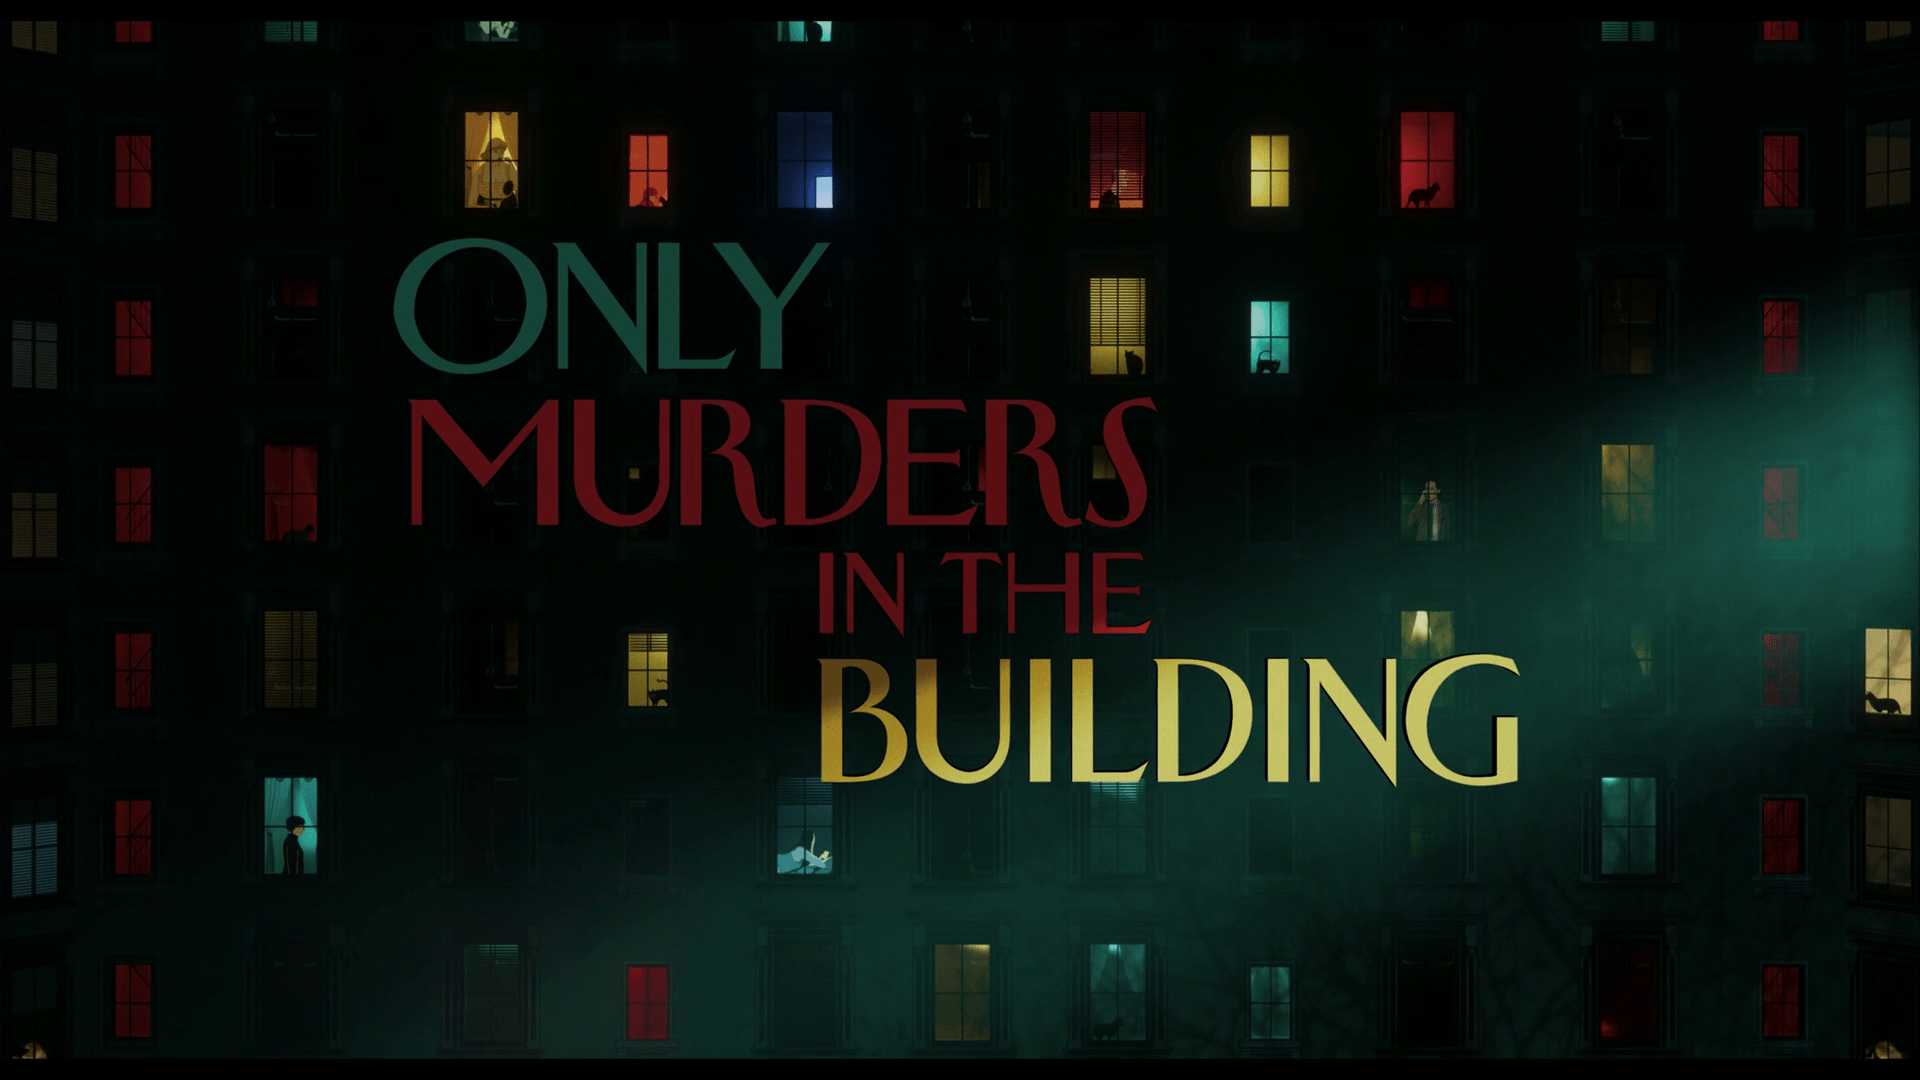 Only murder in the building